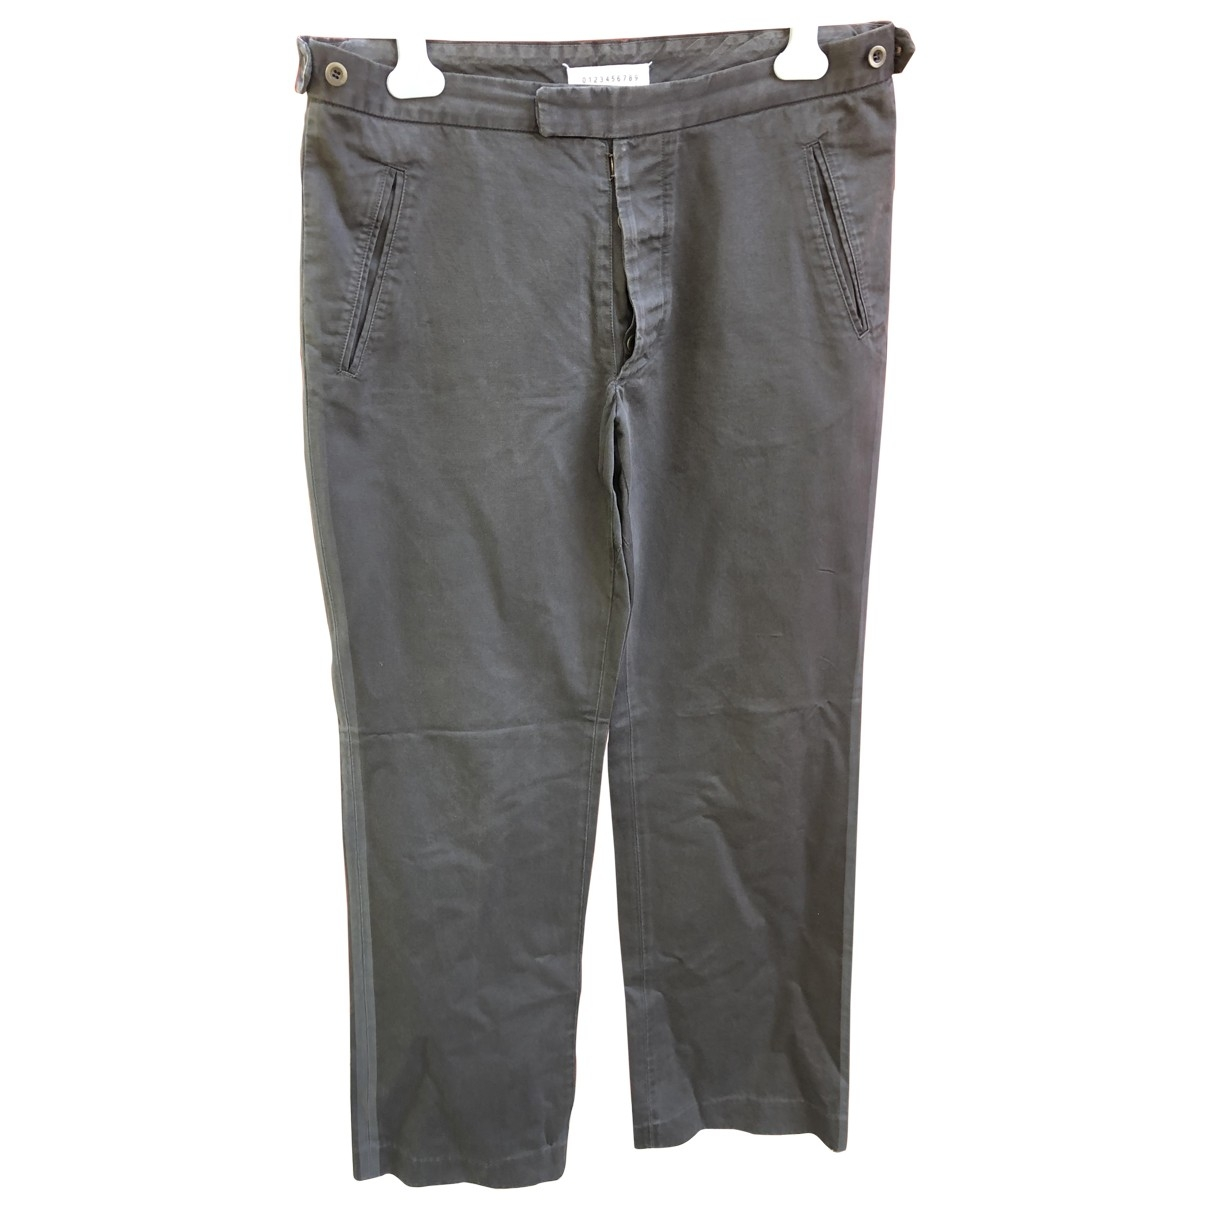 Maison Martin Margiela \N Grey Cotton Trousers for Men 50 IT